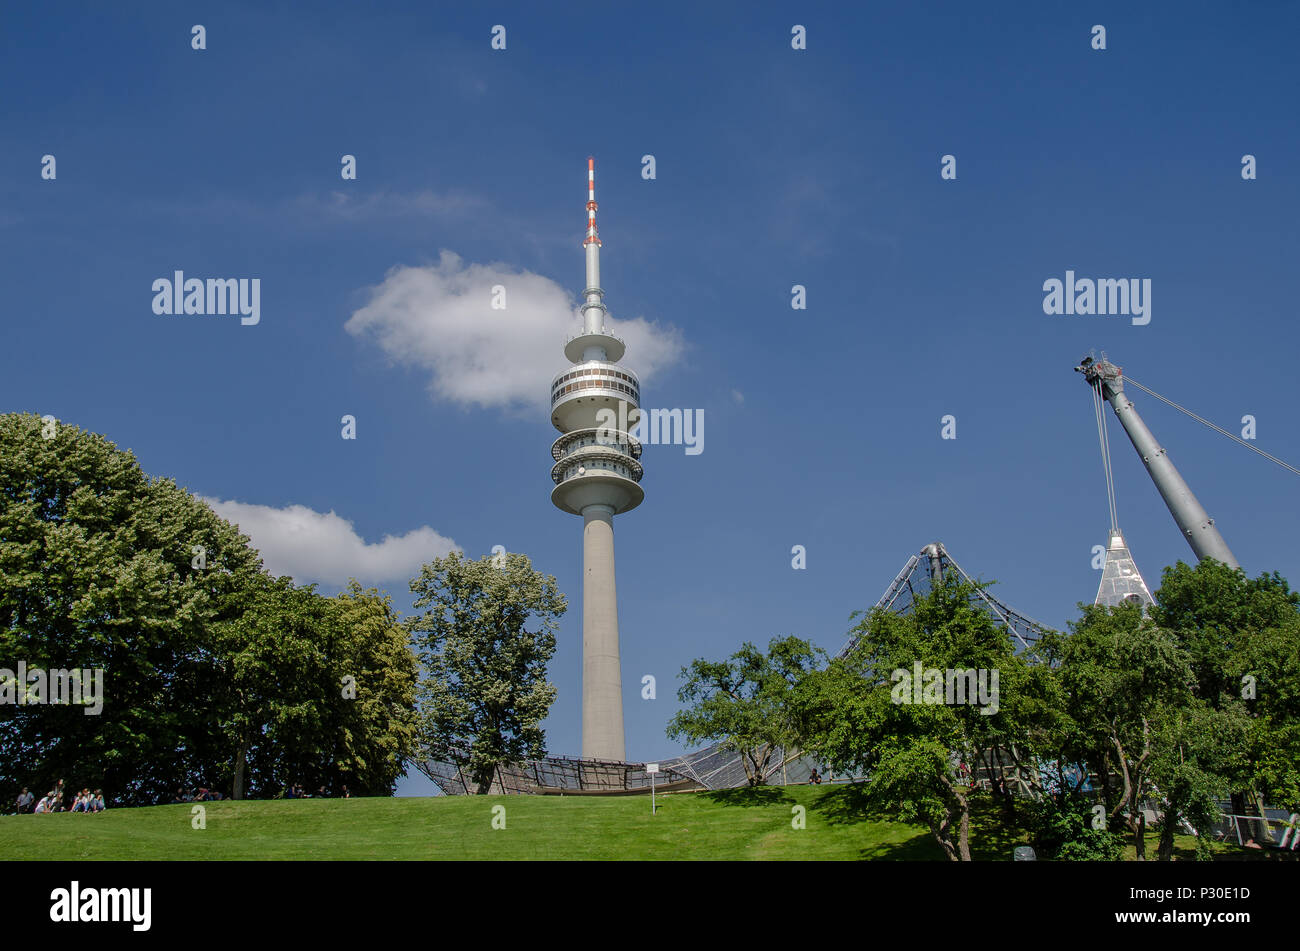 The Olympic Tower in Munich has an overall height of 291 m and a weight of 52,500 tons. At a height of 190 m there is an observation platform. - Stock Image